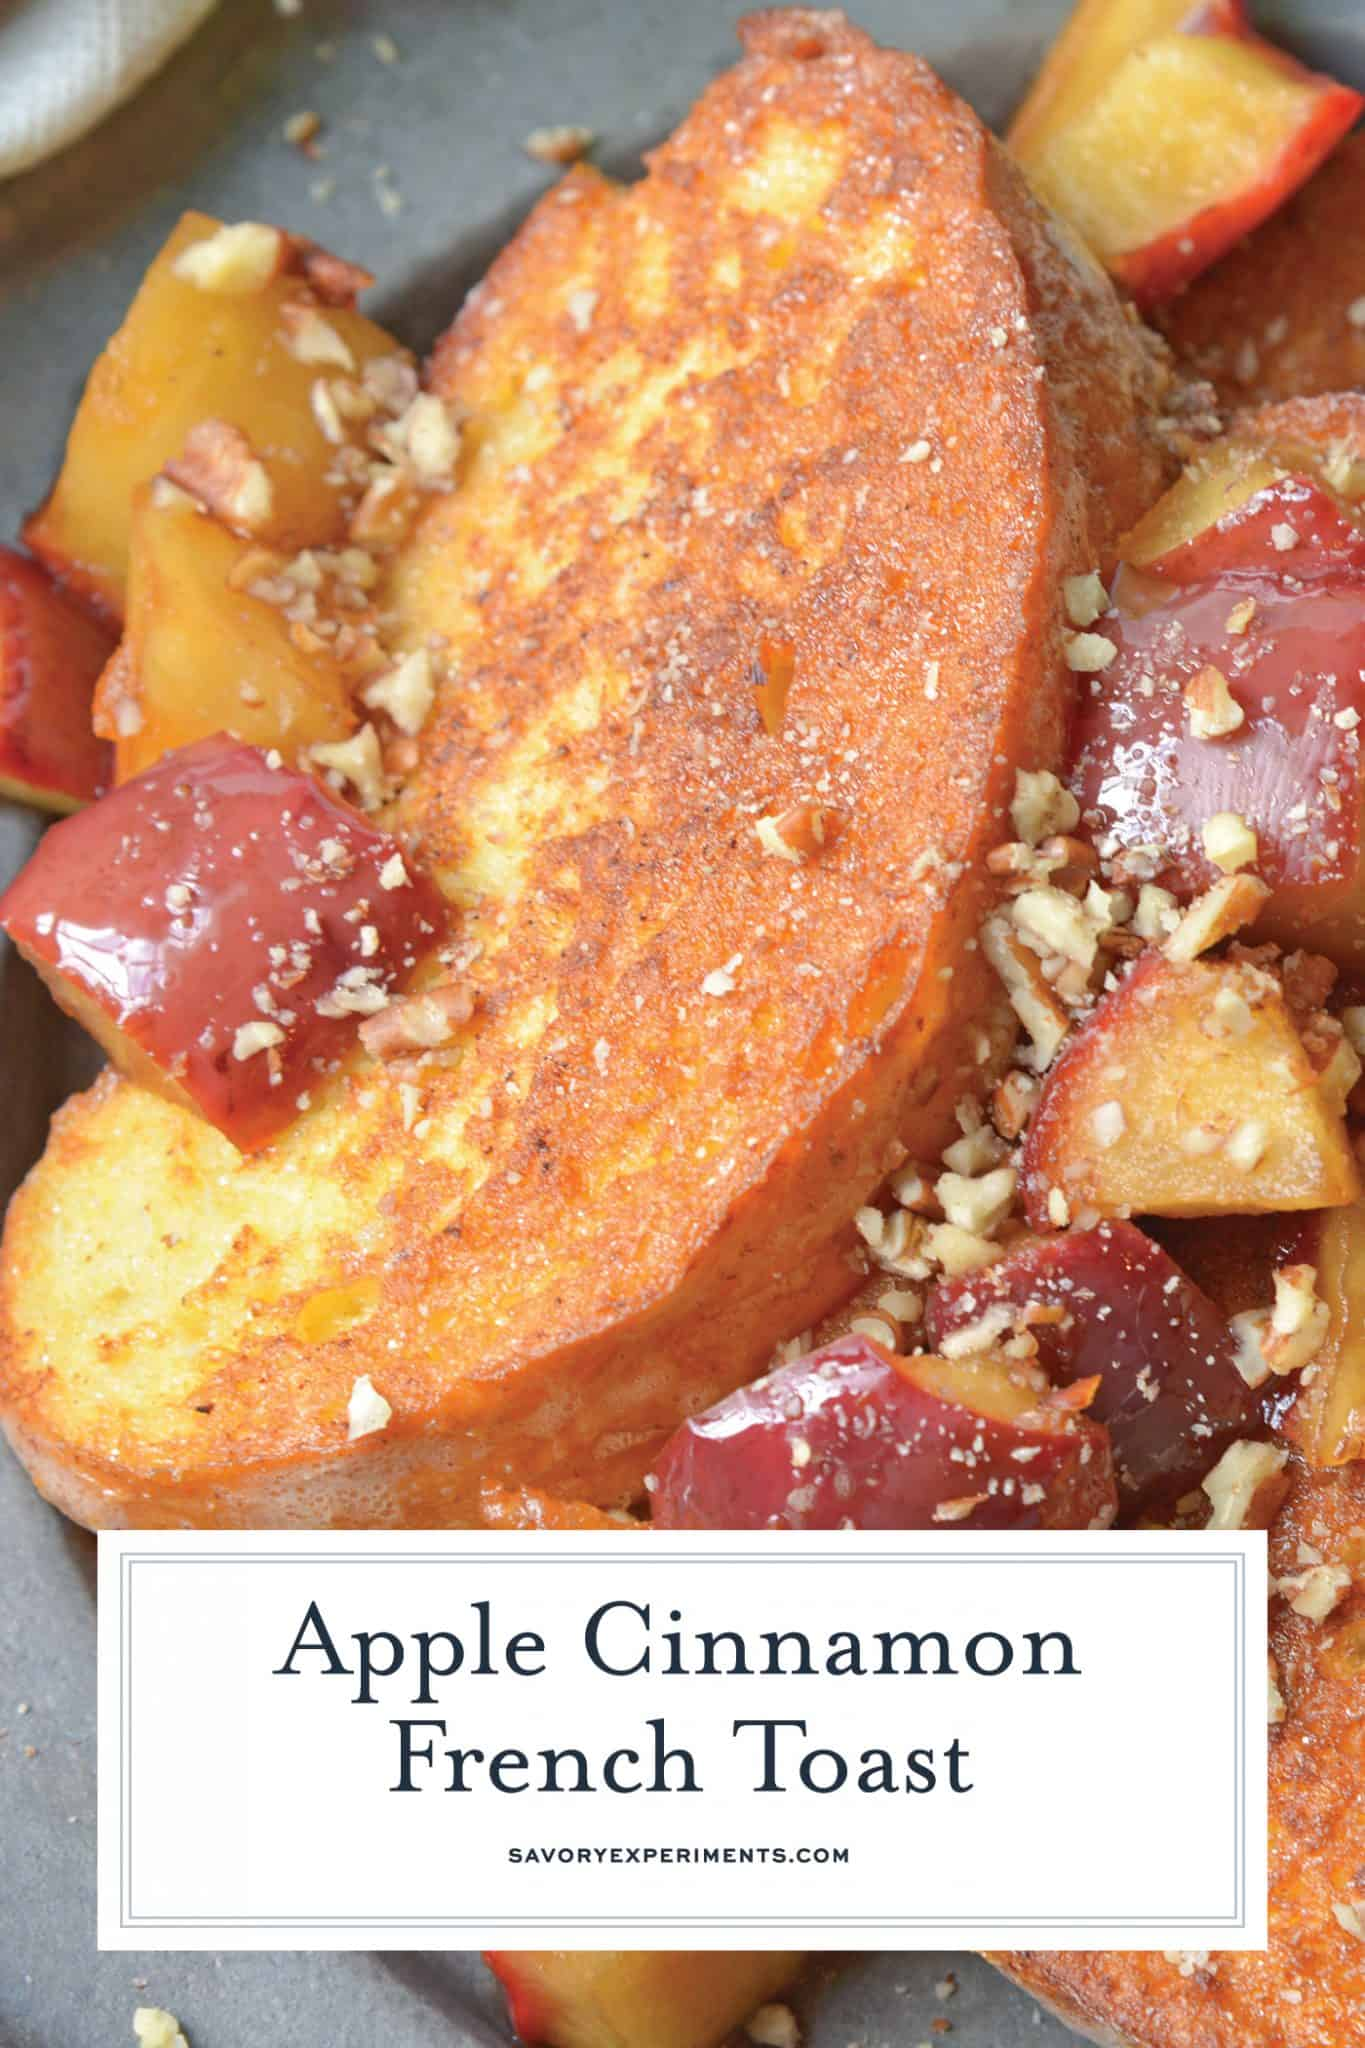 Apple Cinnamon French Toast is the perfect breakfast or brunch recipe for fall! This cinnamon french toast will jump start your fall season. #frenchtoastrecipe #cinnamonfrenchtoast www.savoryexperiments.com